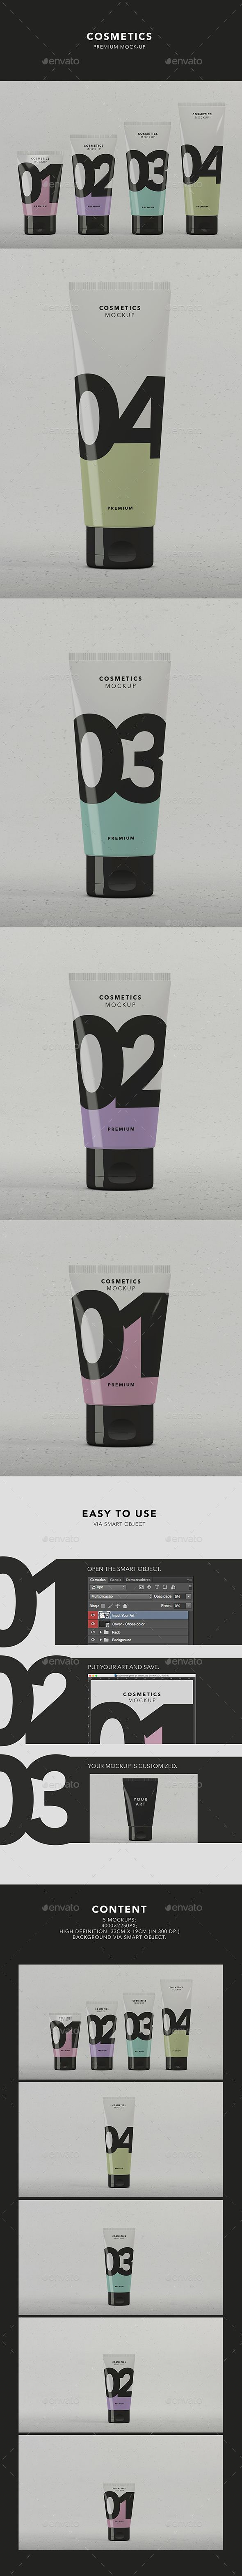 Cosmetics Package Mock-up #design Download: http://graphicriver.net/item/cosmetics-package-mockup/13527264?ref=ksioks